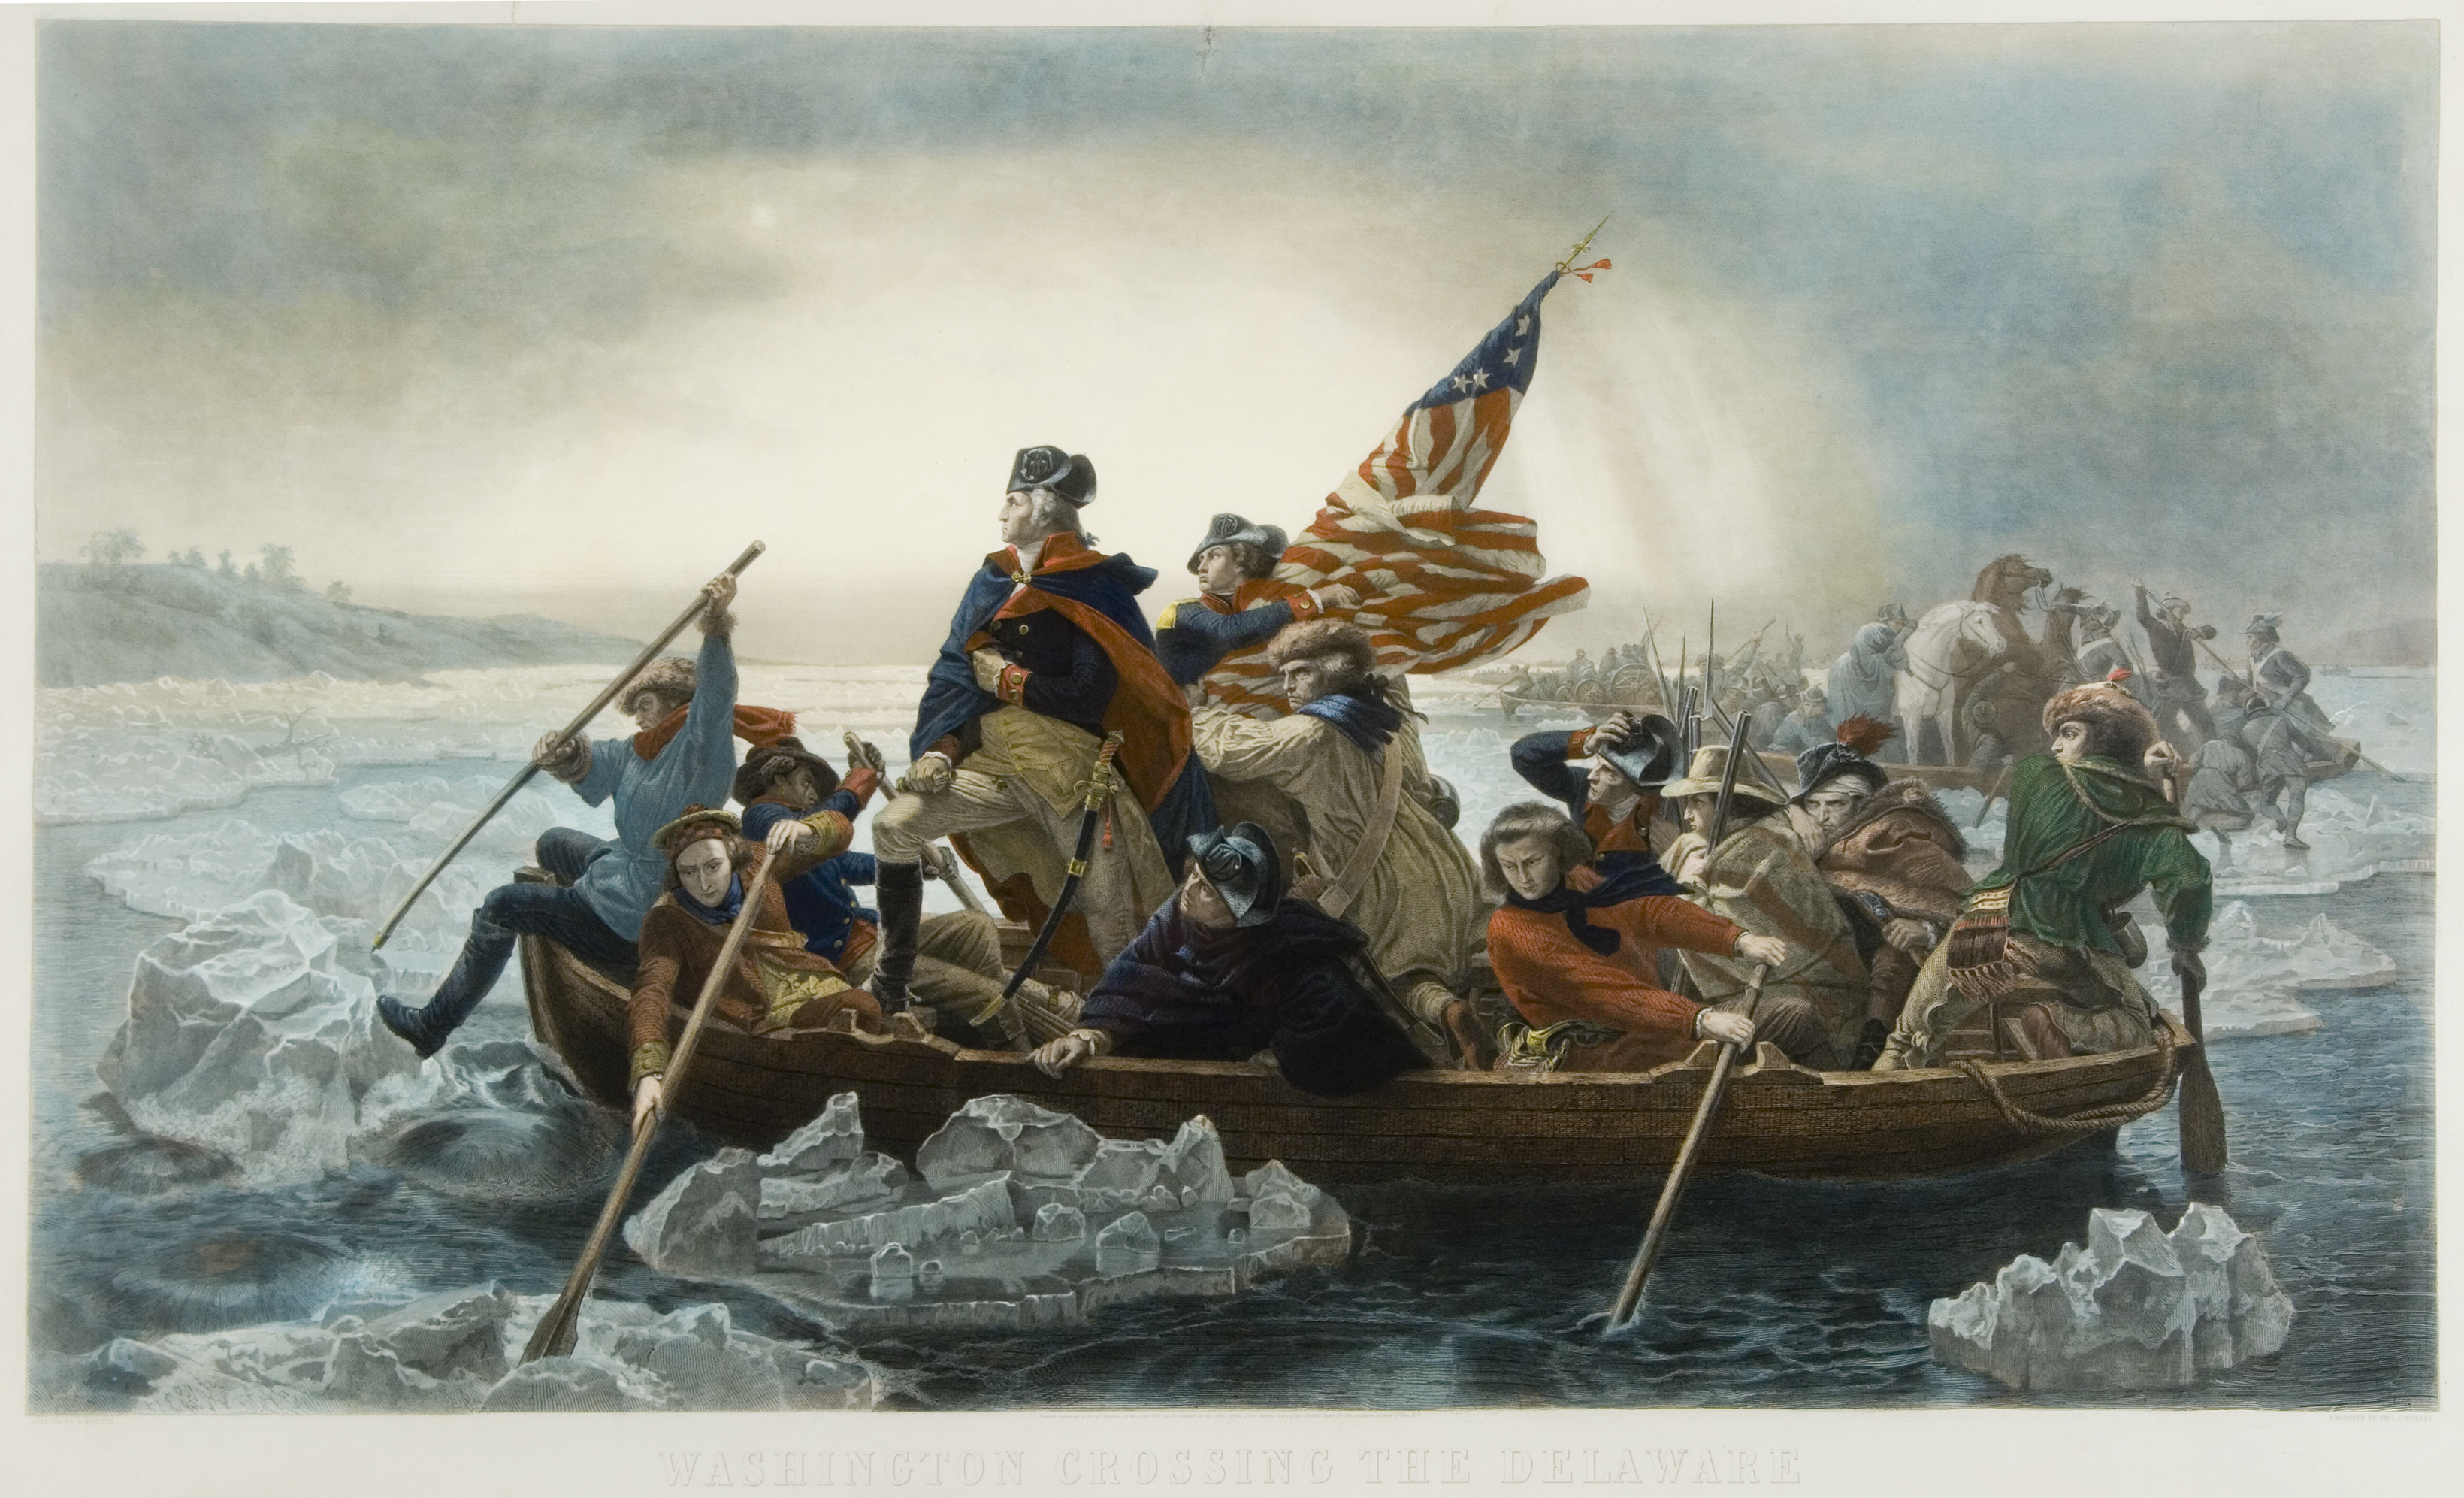 Washington Crossing the Delaware, Paul Giradet, engraver; after Emanuel Gottlieb Leutze, artist, New York, Berlin and Paris: Goupil & Co., 1853